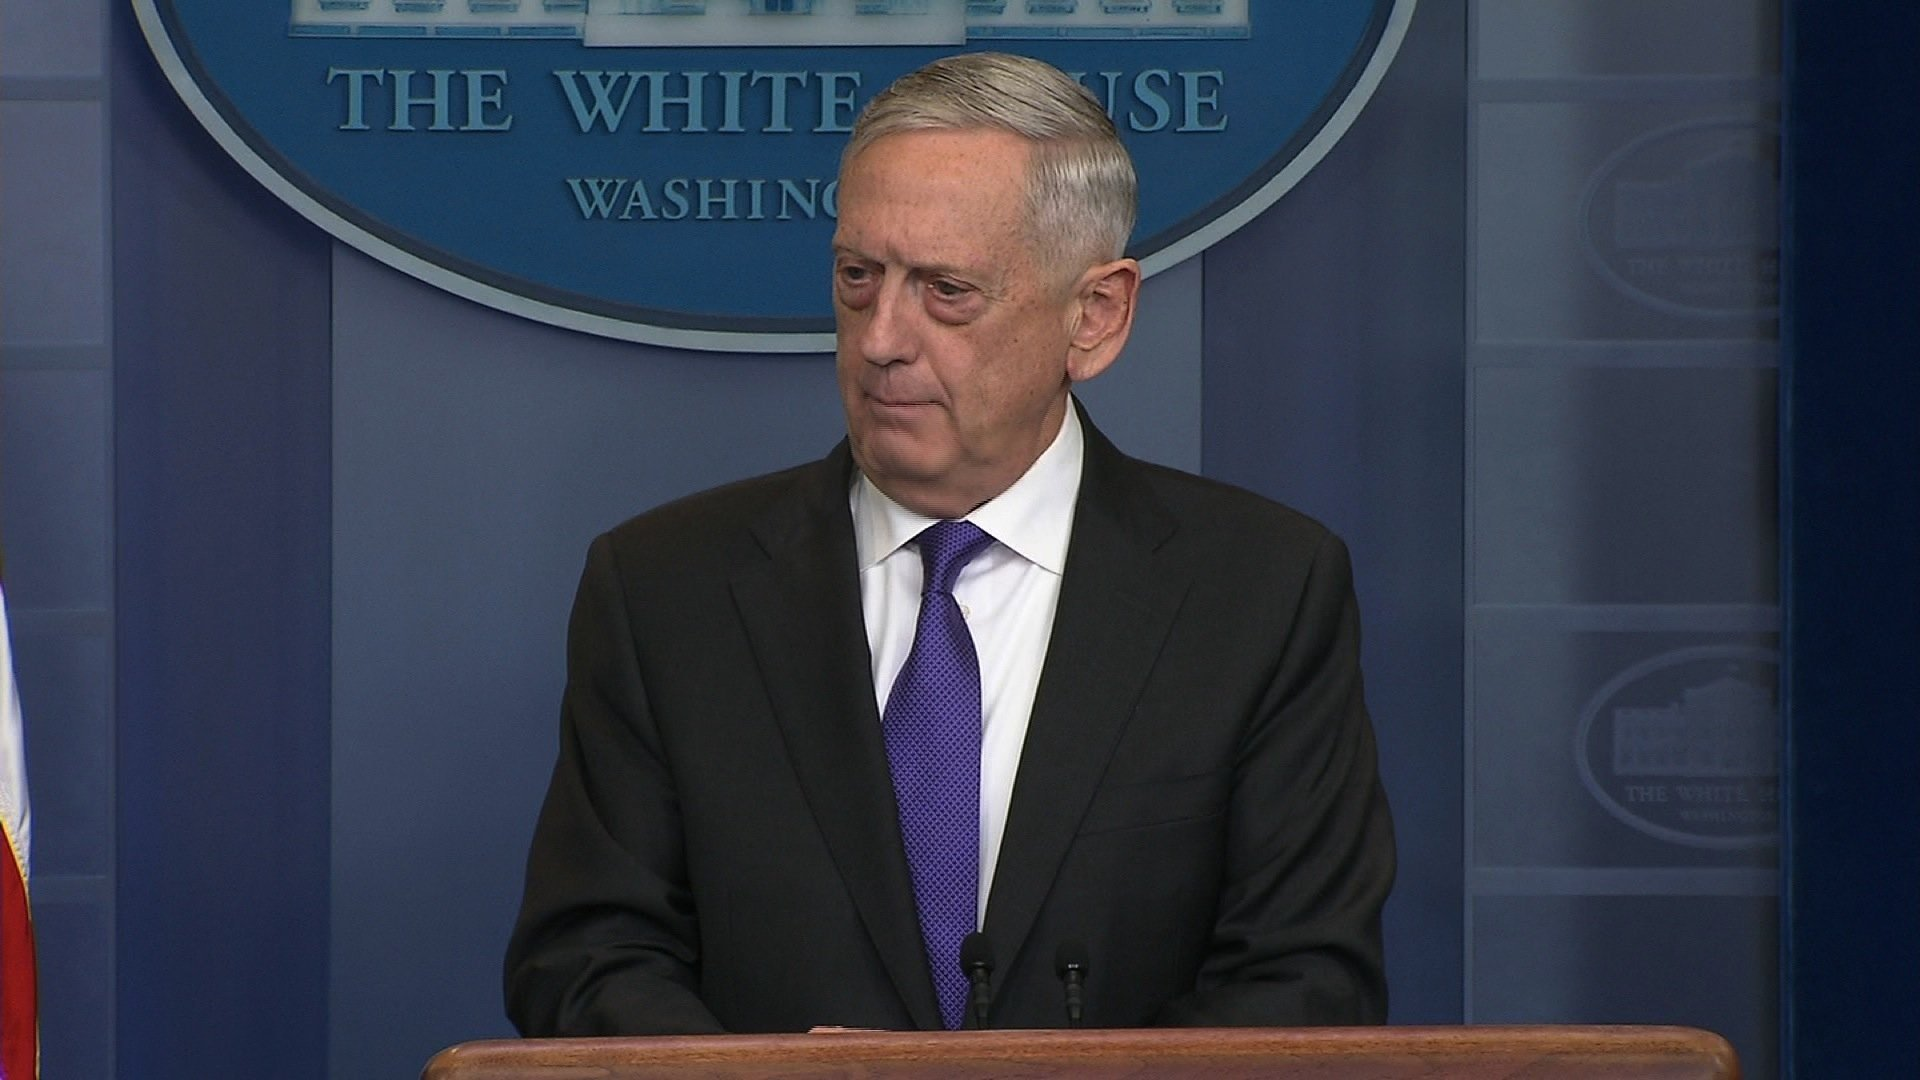 Mattis on taking action in Syria: 'I don't rule anything out'